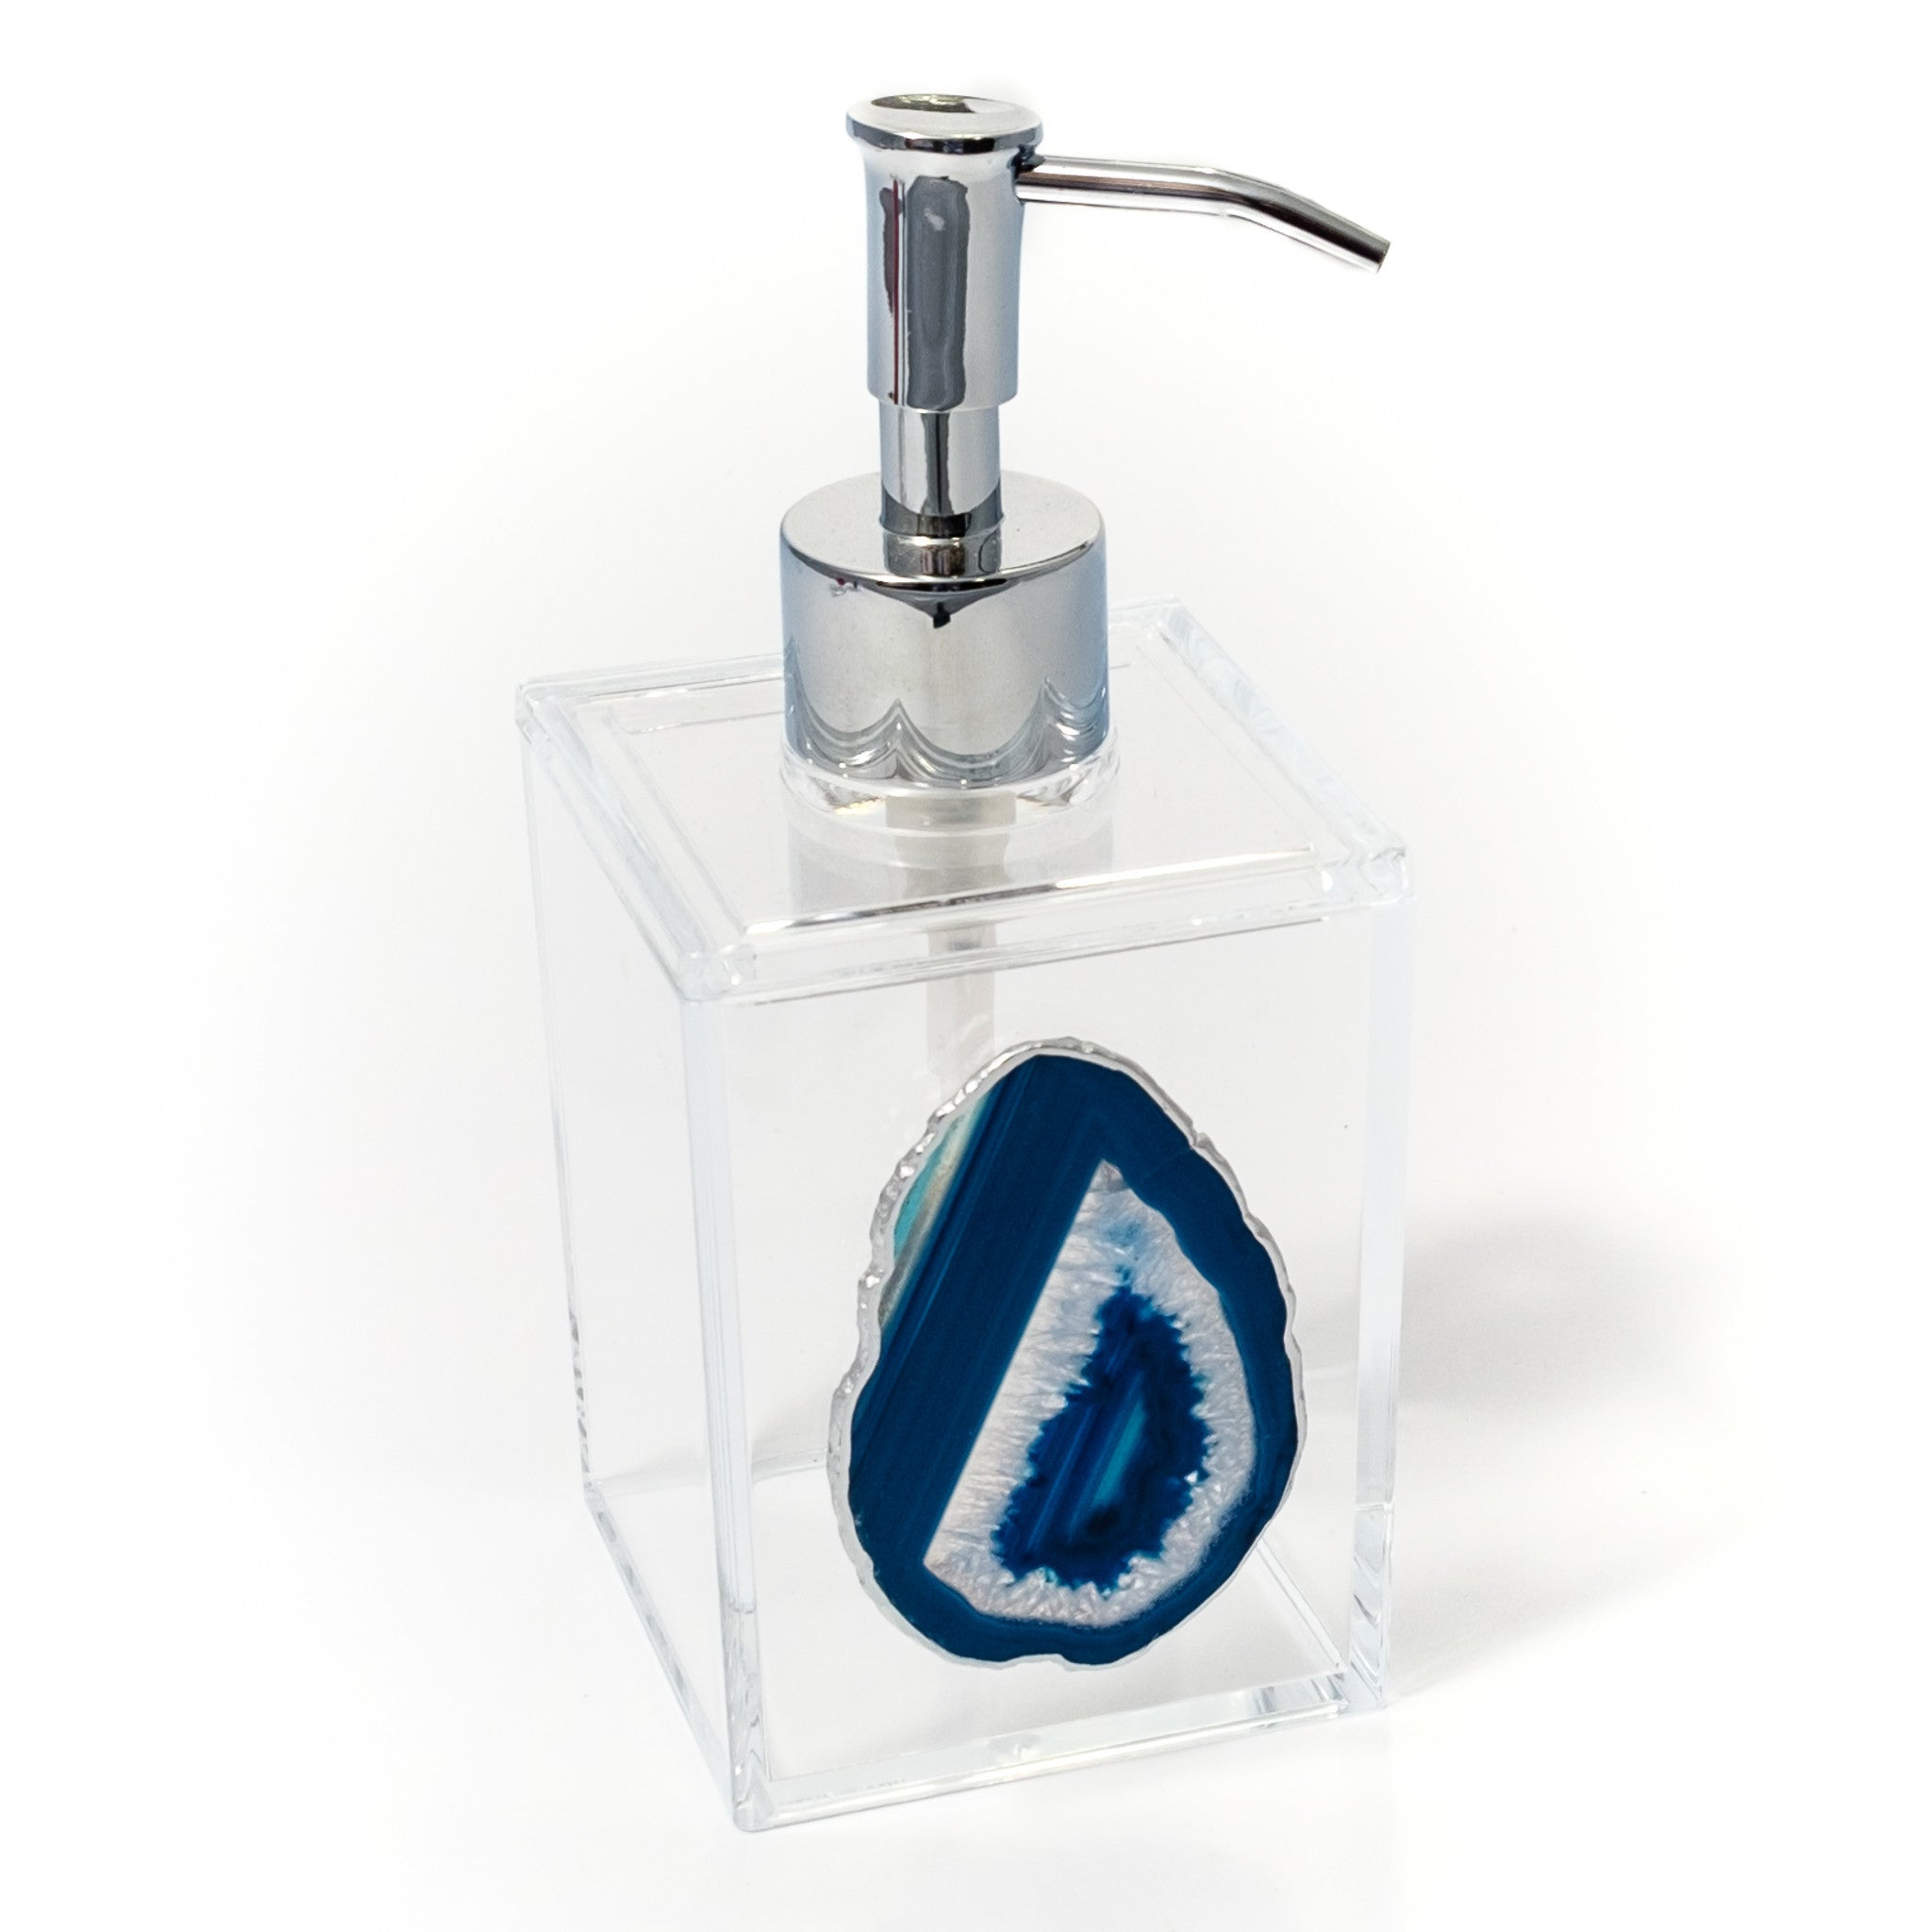 Charmant Acrylic Soap Dispenser W/ Blue Agate By Mapleton Drive